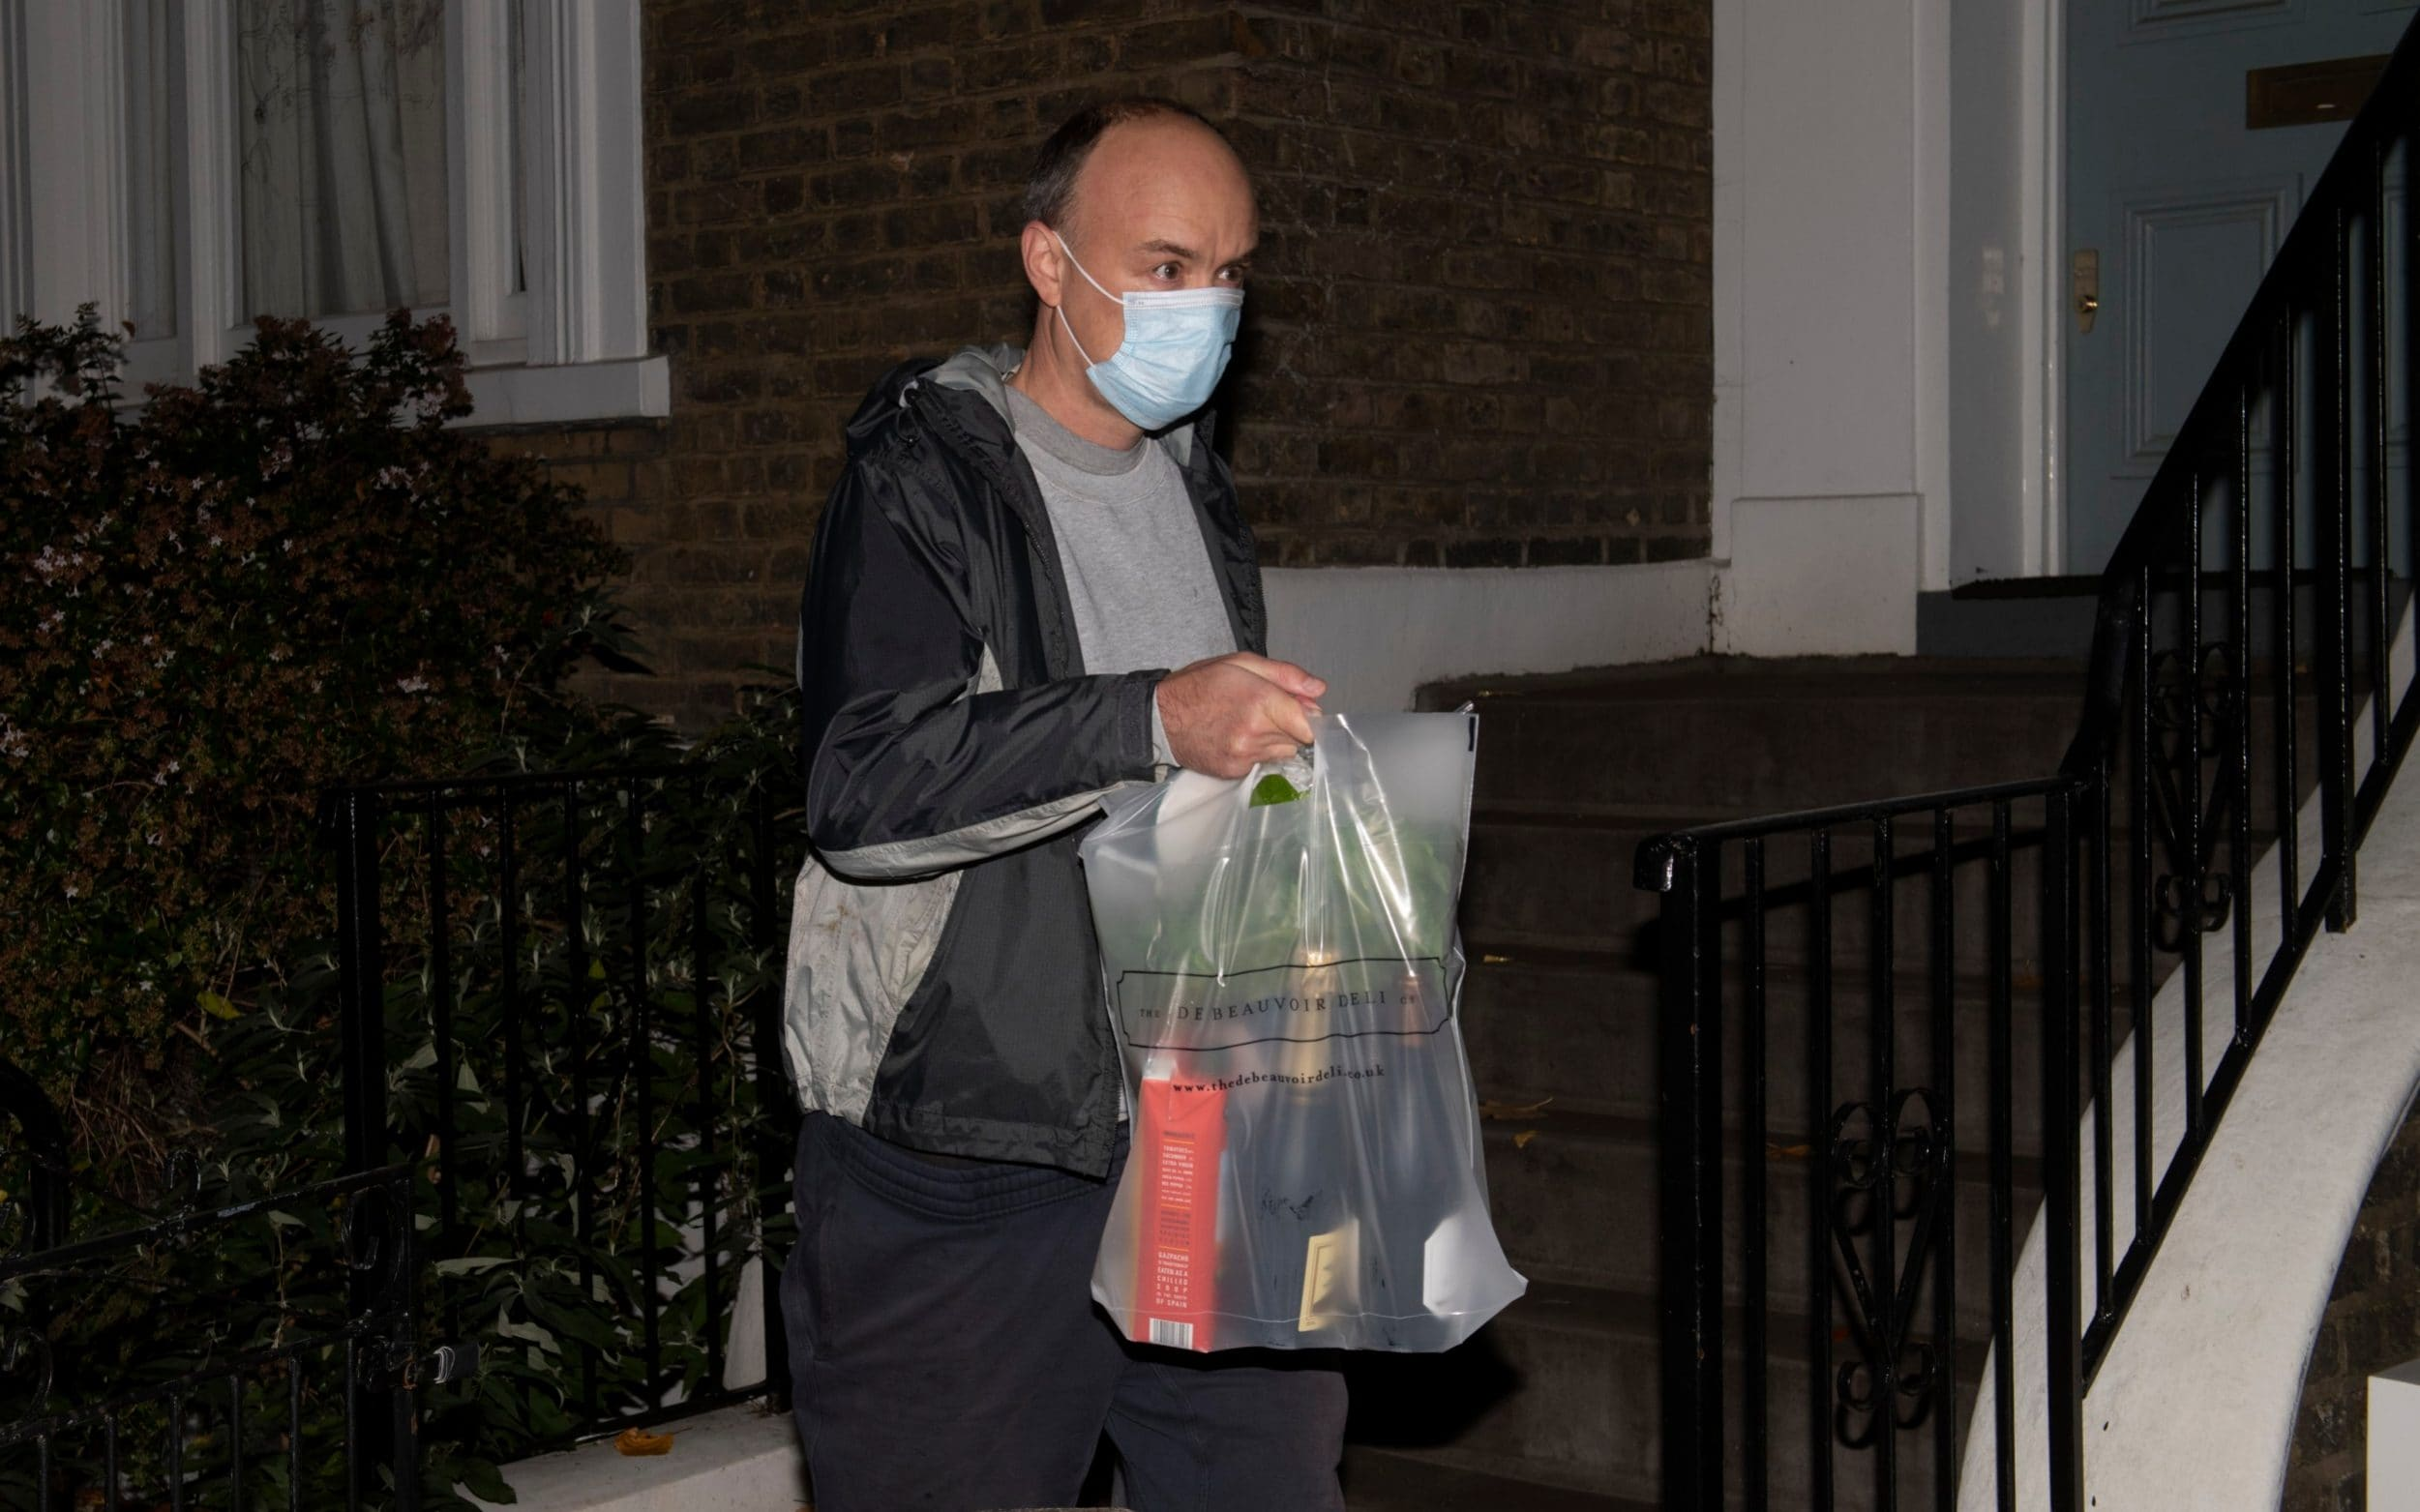 Dominic Cummings wears a mask as he walks down a street carrying a plastic bag full of champagne, wine, and gazpacho